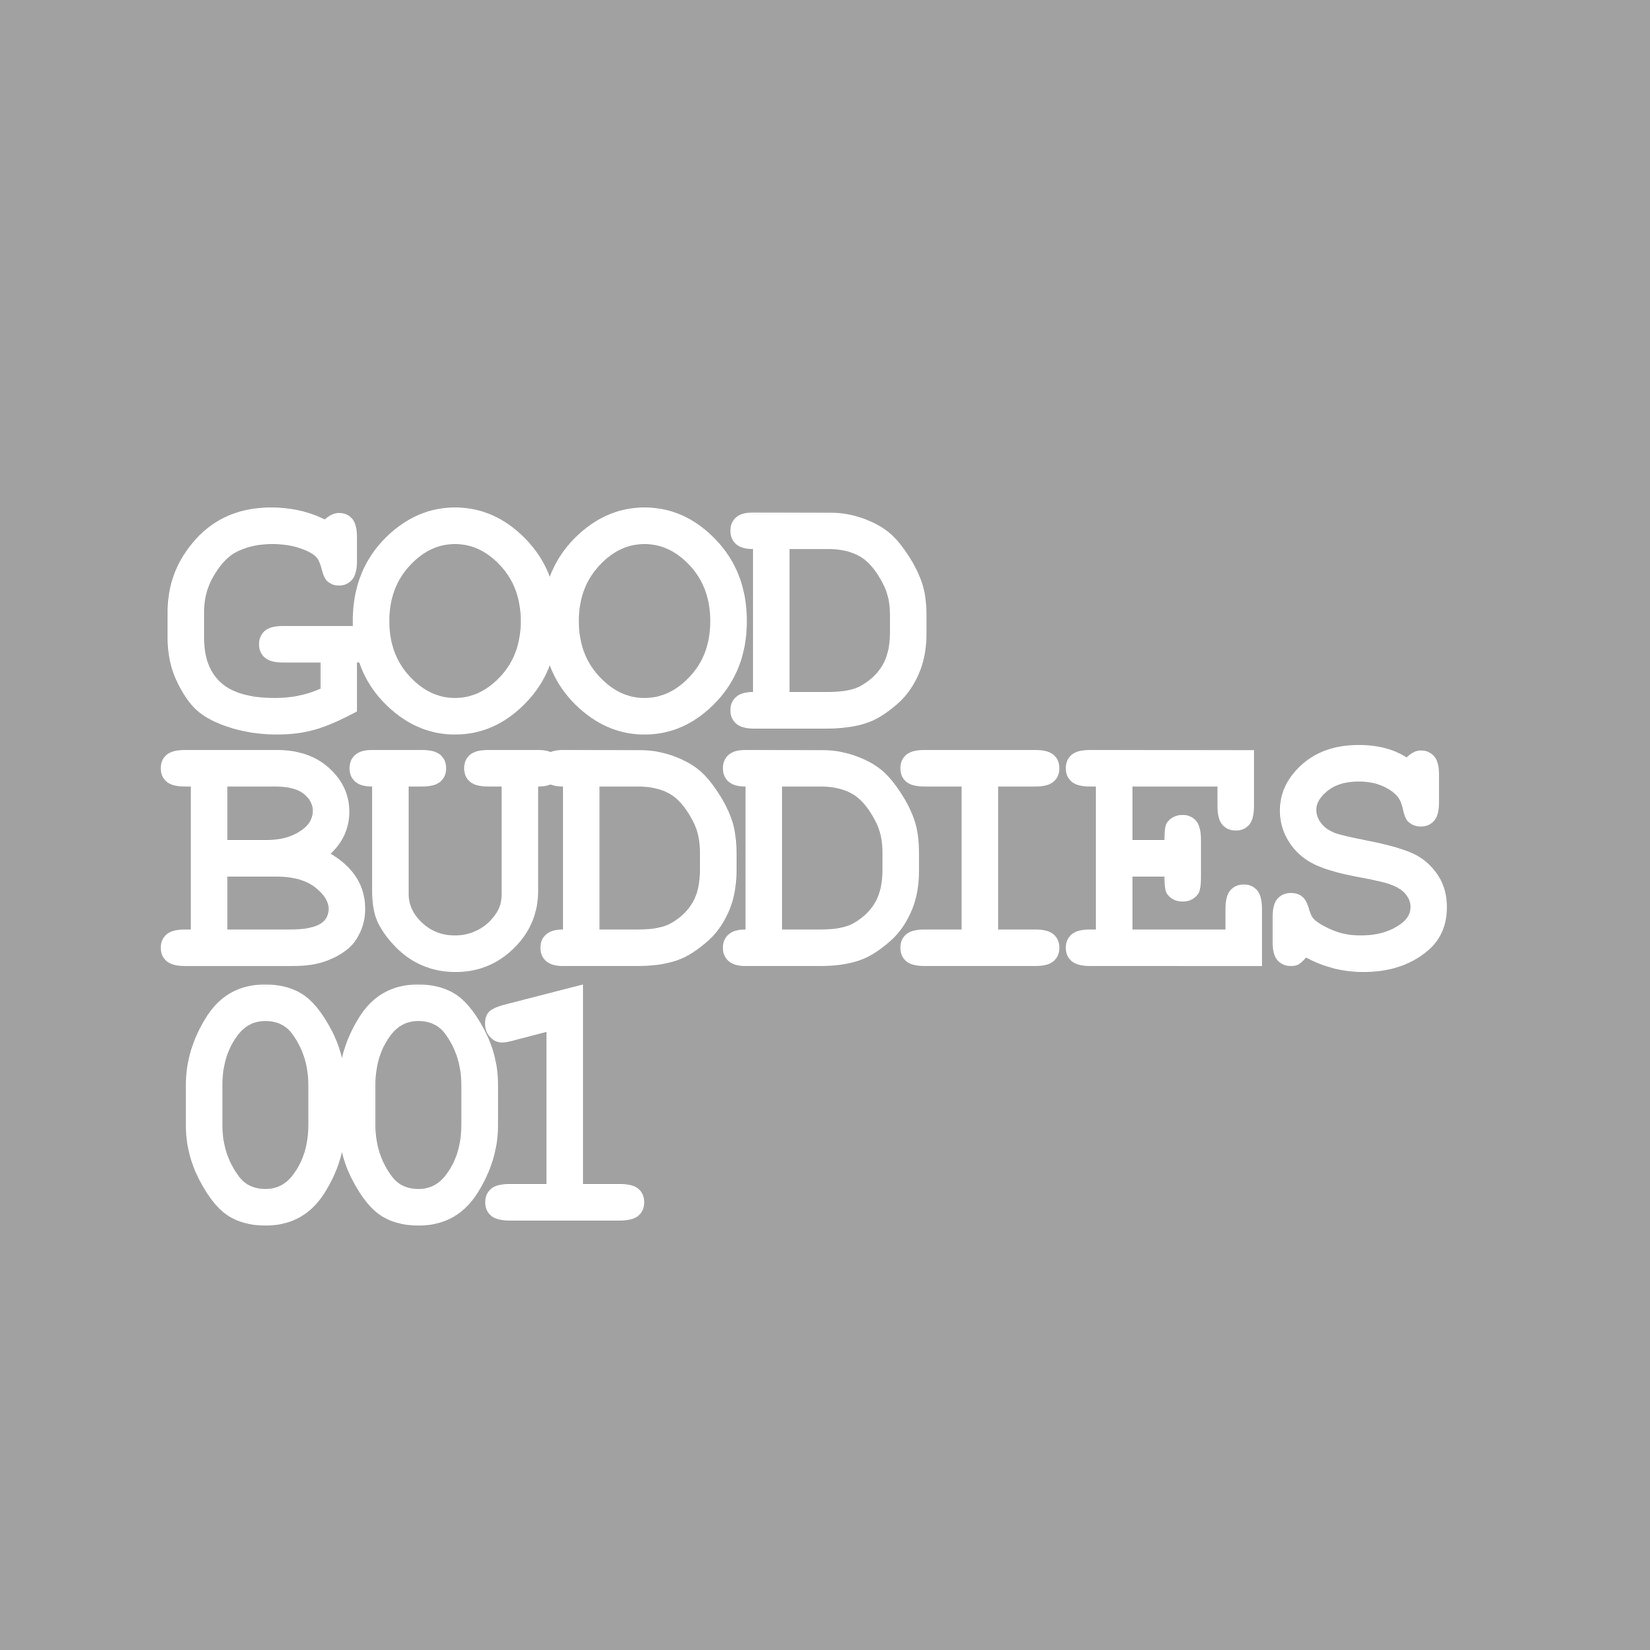 Good Buddies 001 Artwork